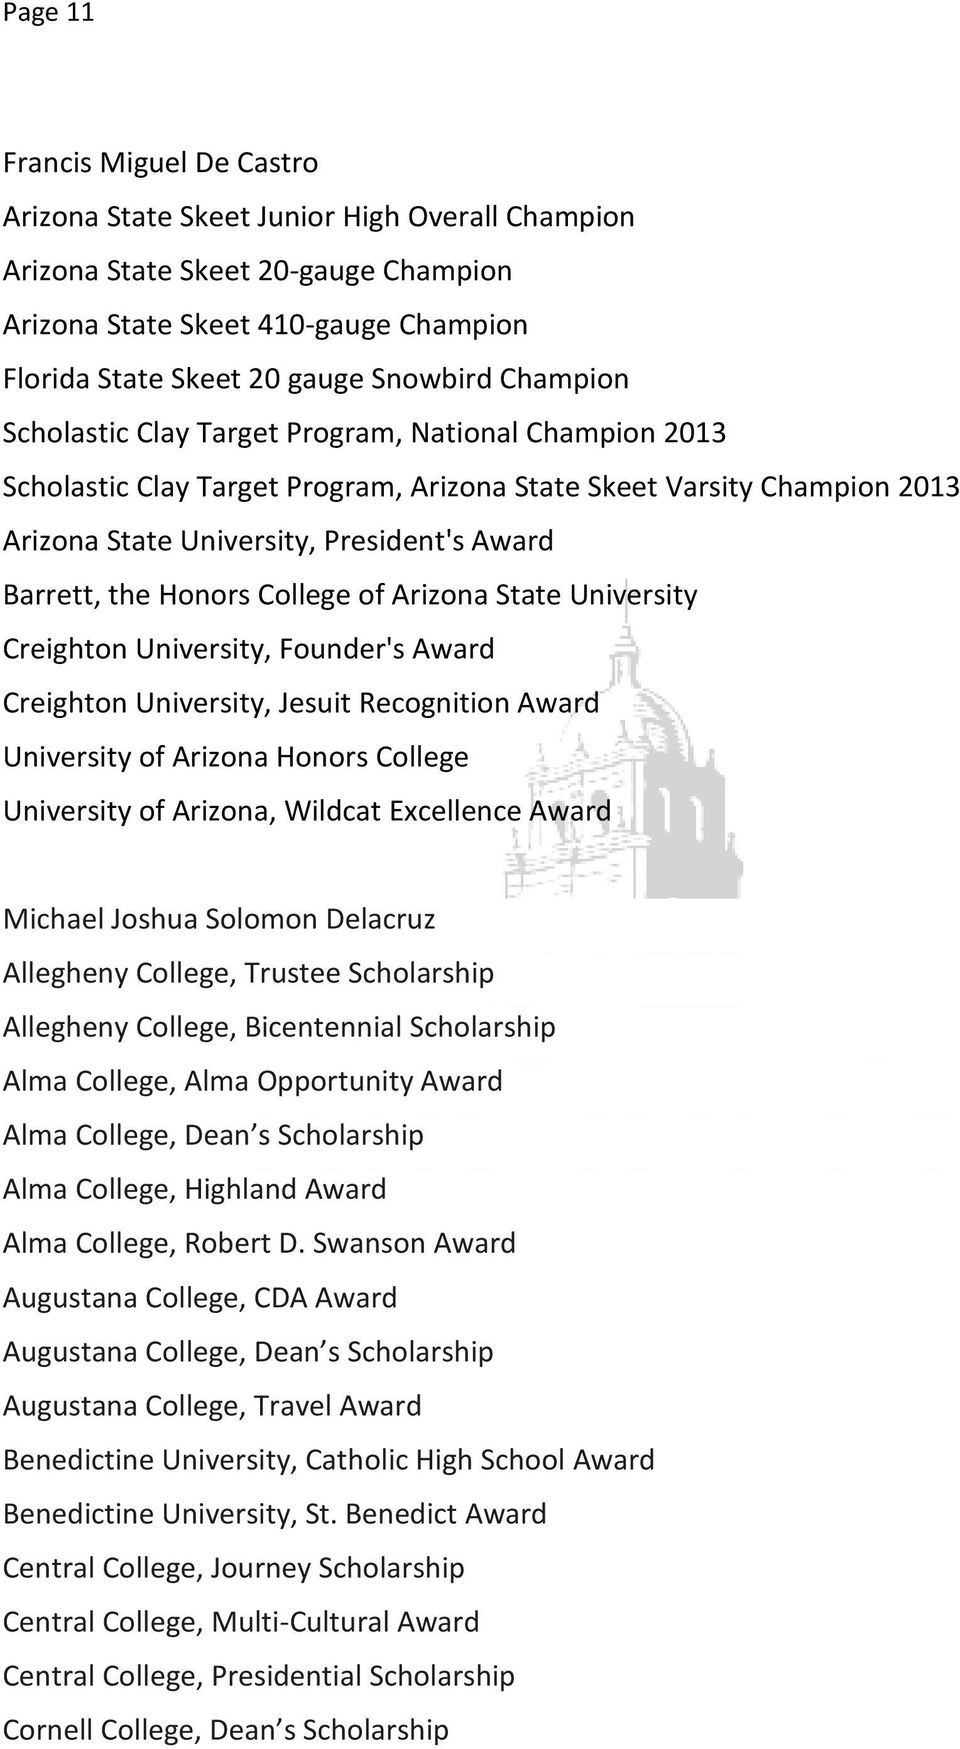 Honors College of Arizona State University Creighton University, Founder's Award Creighton University, Jesuit Recognition Award Michael Joshua Solomon Delacruz Allegheny College, Trustee Scholarship